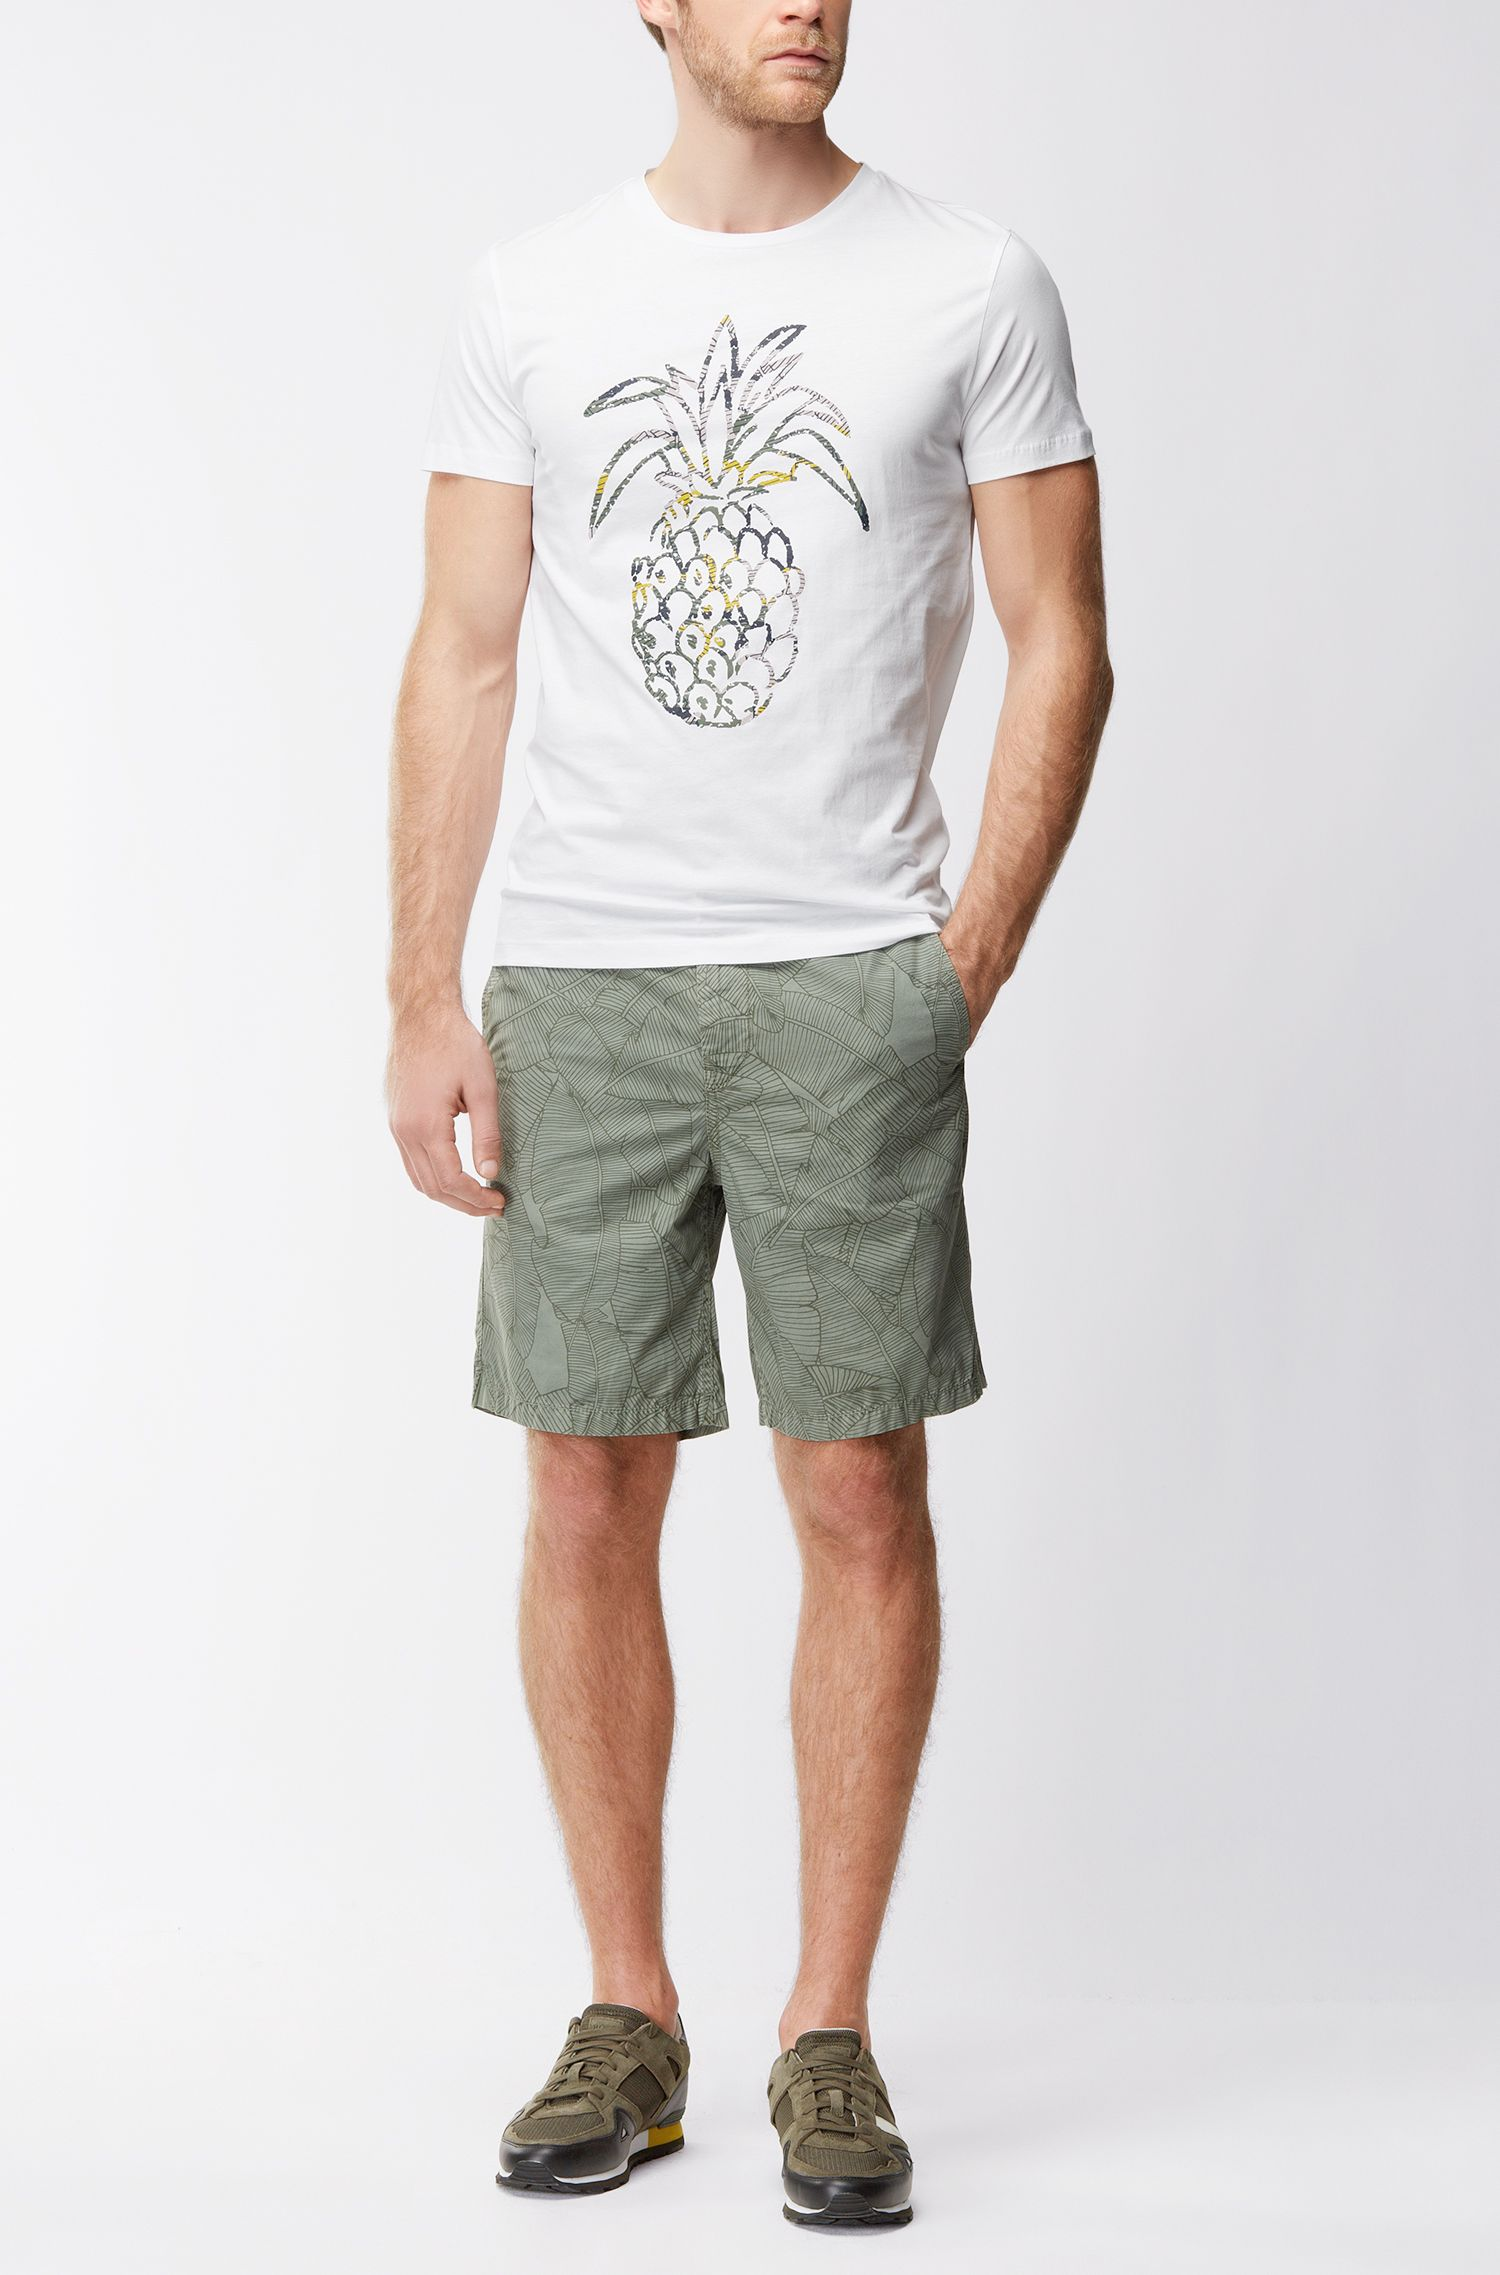 Pineapple Cotton Jersey Graphic T-Shirt | Tauno